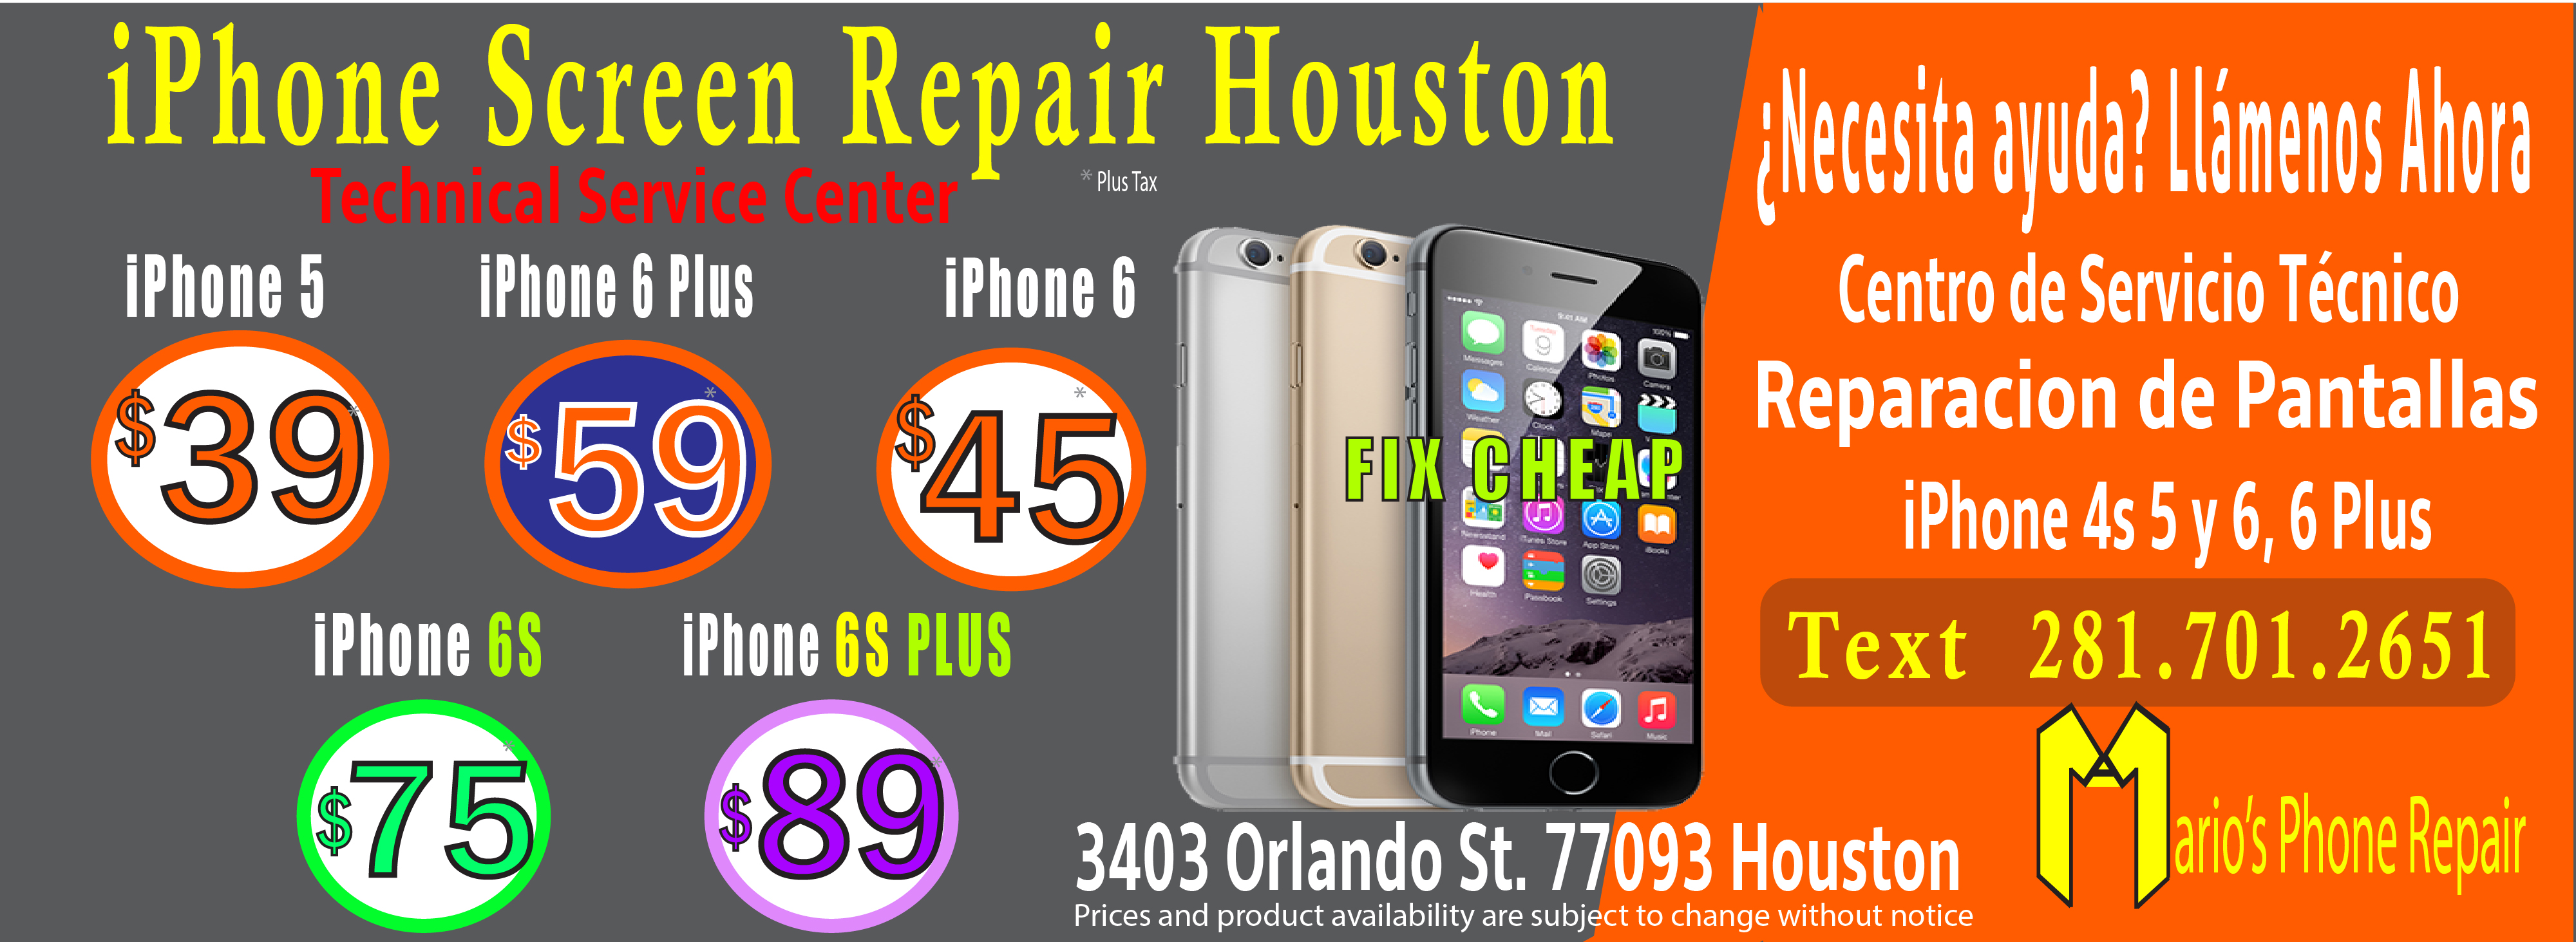 iphone-screen-repair-houston-2017